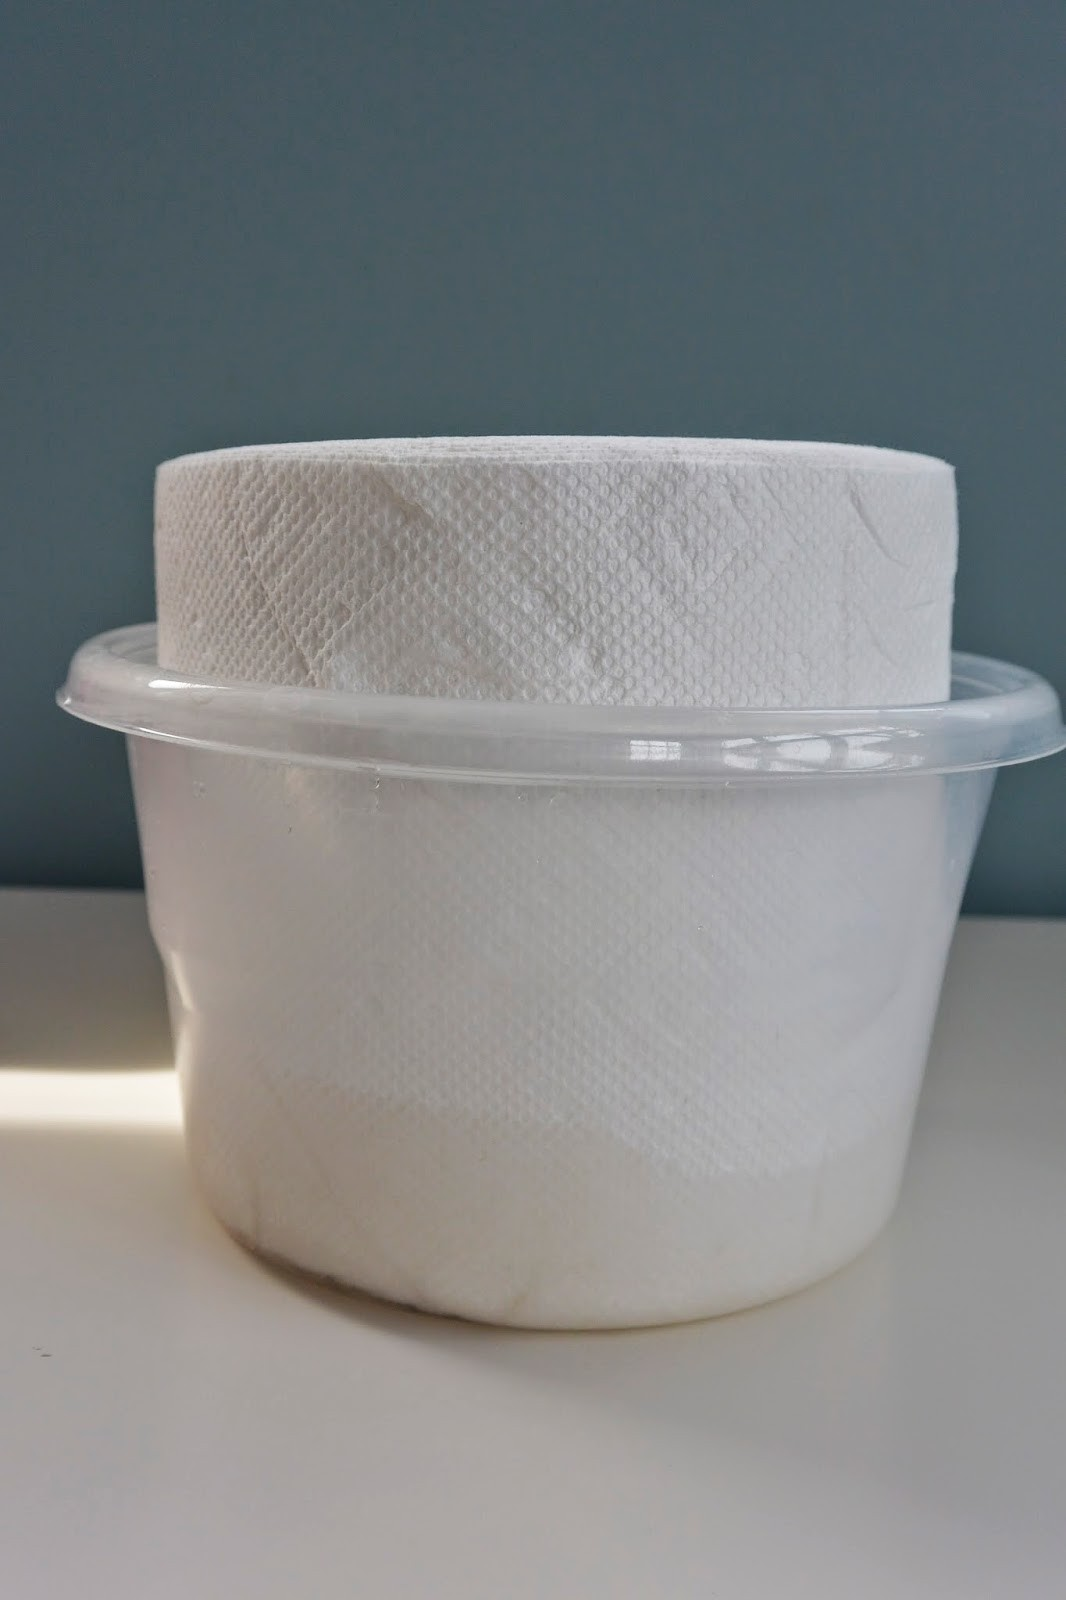 Paper towels in plastic container with solution #diy #babywipes